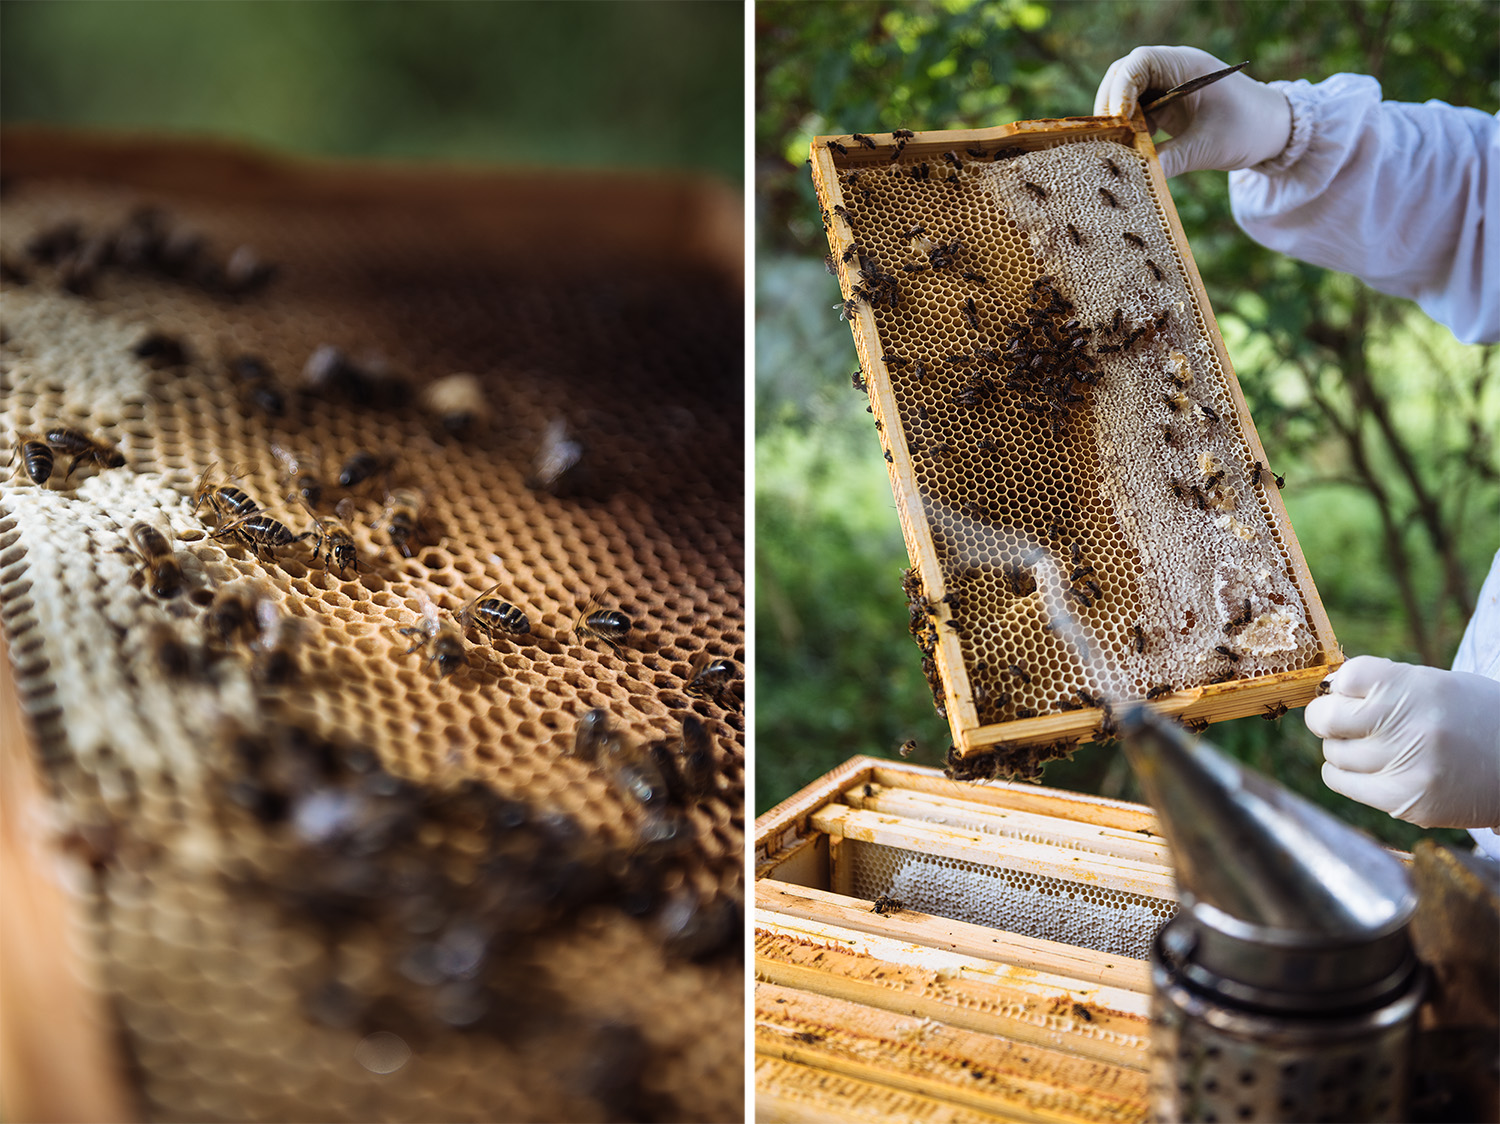 editorial-photography-beekeeping-bees.jpg